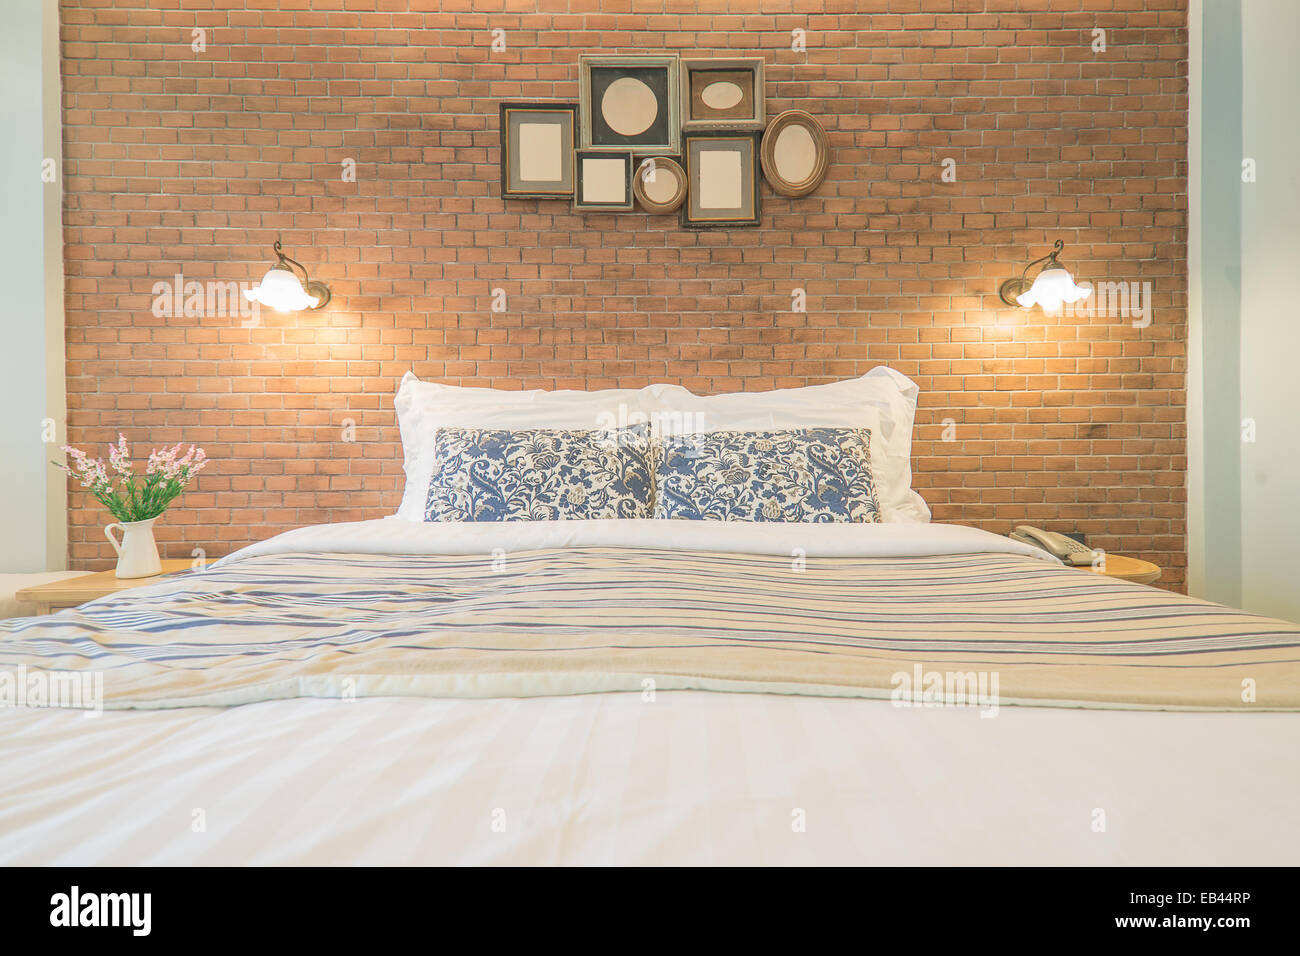 English Country Style Bedroom Stock Photo 75694298 Alamy